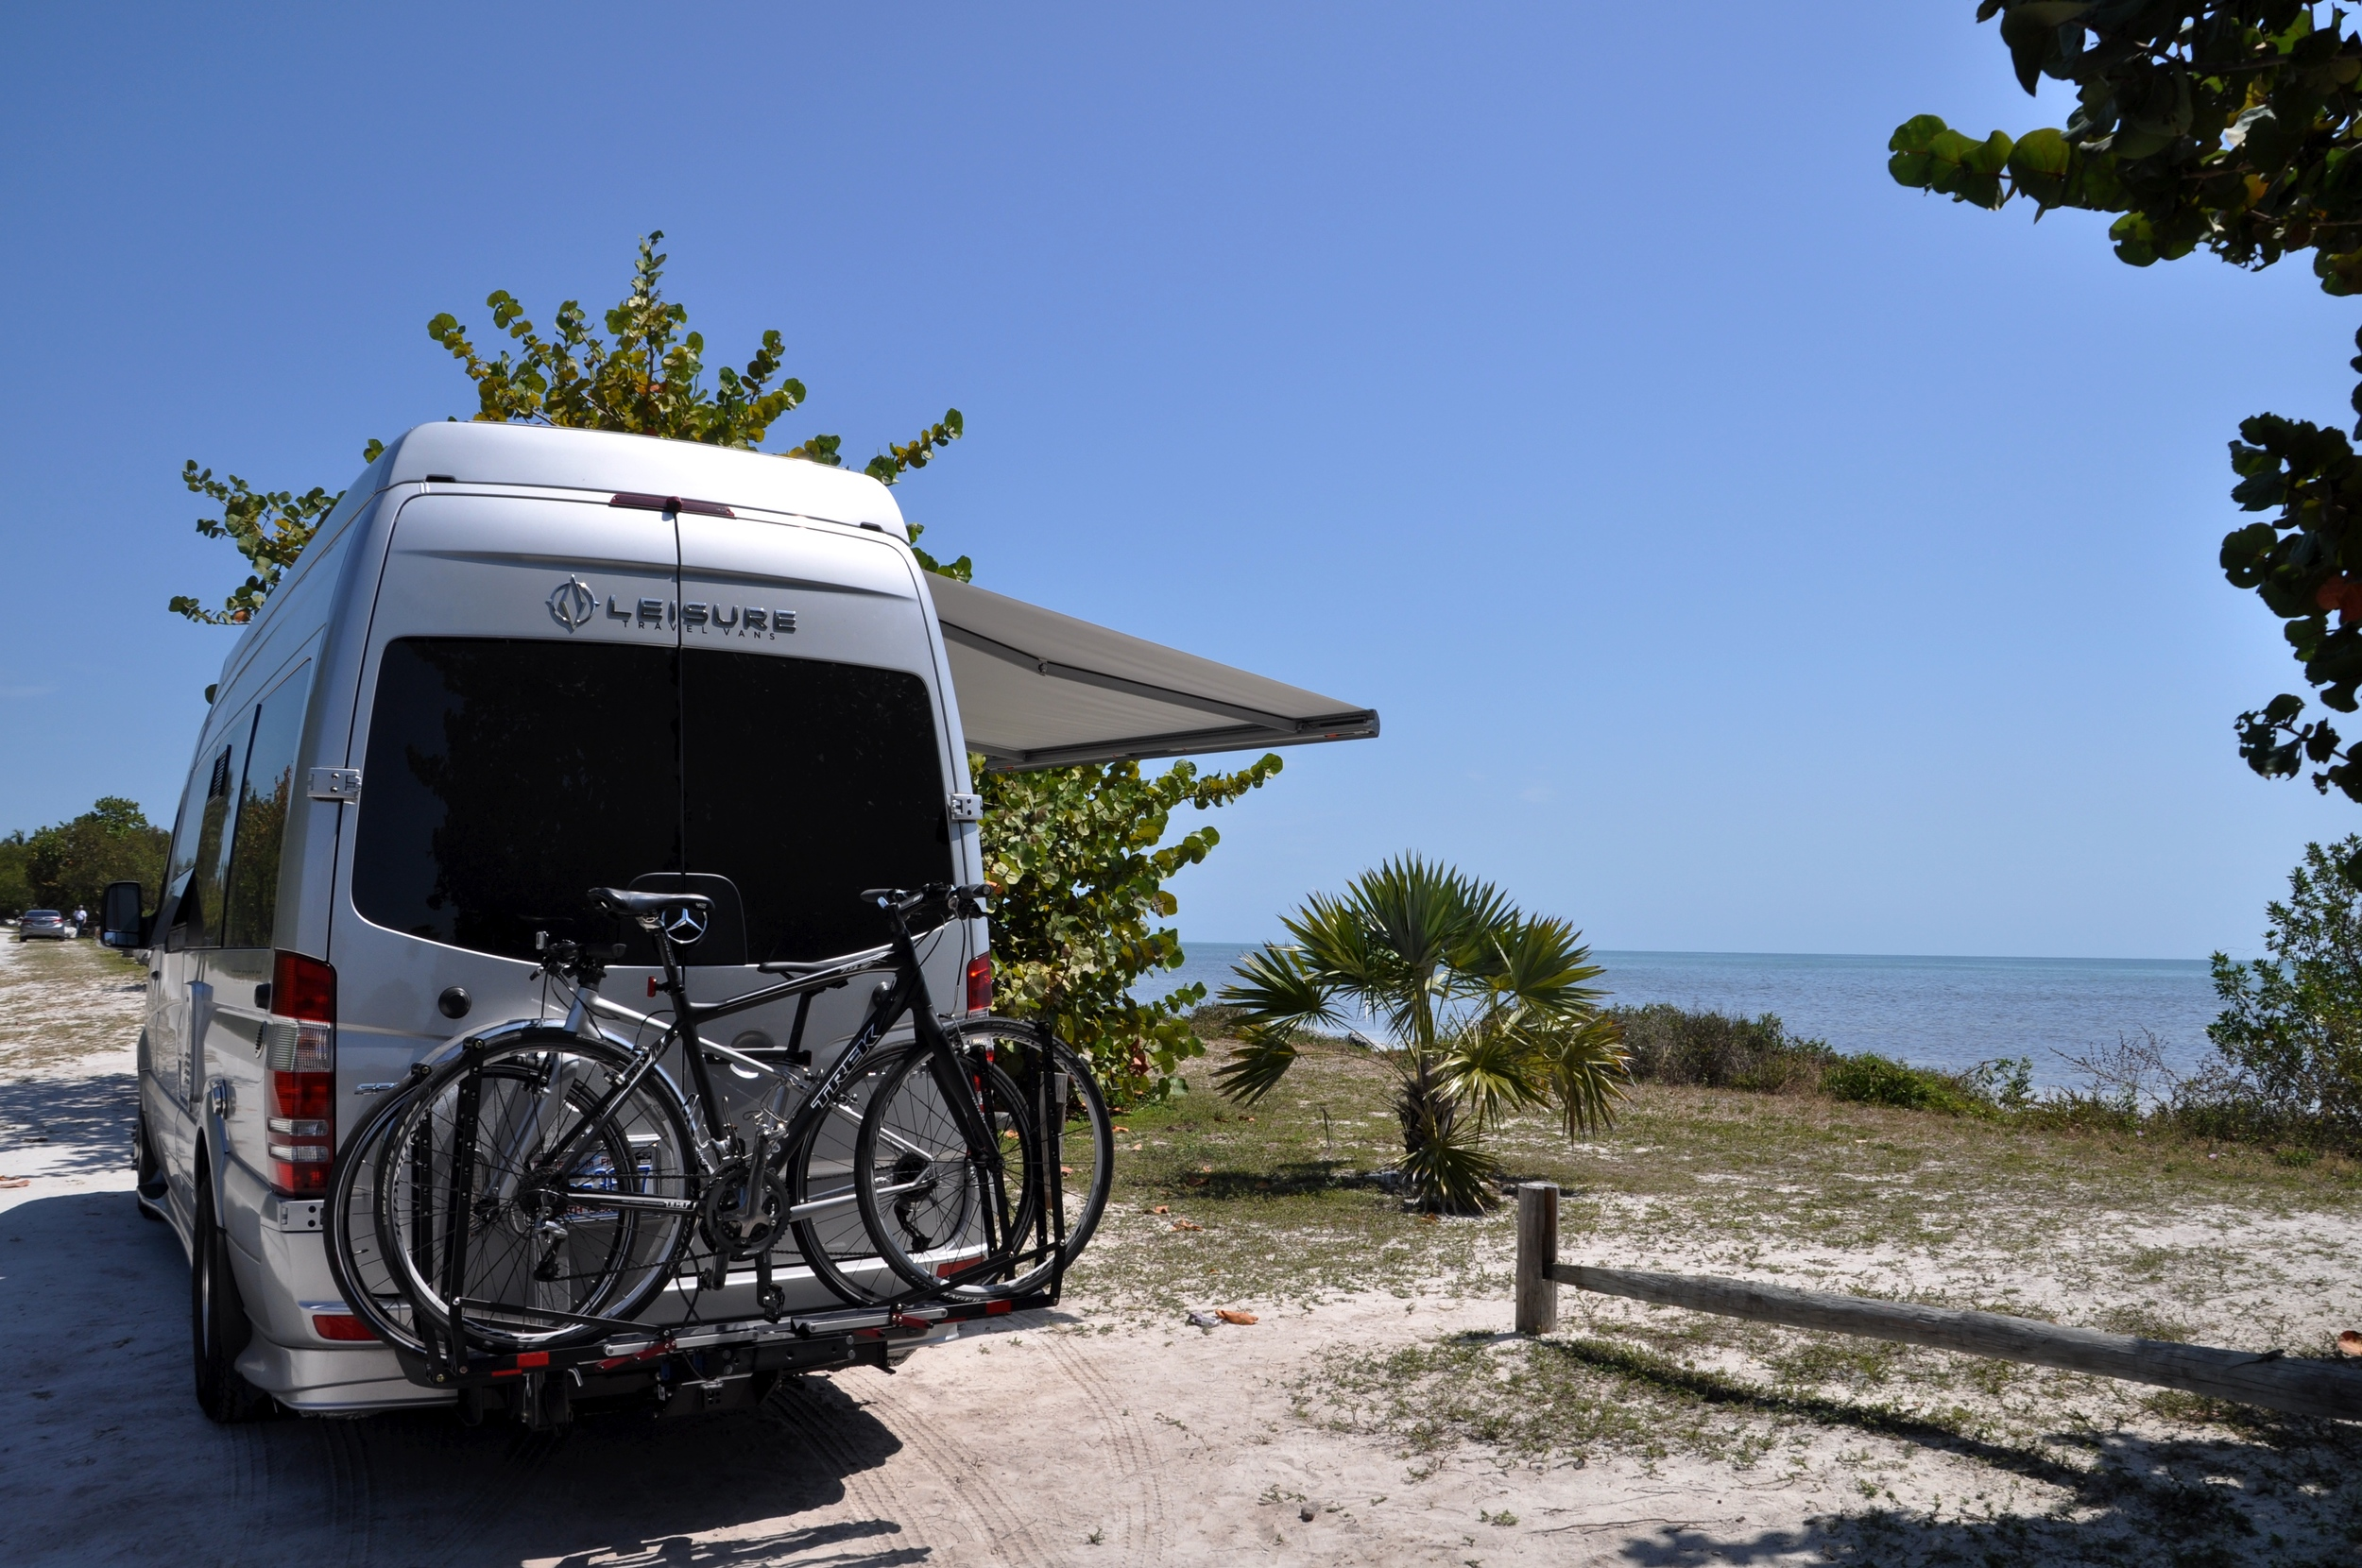 A stop for lunch at Long Key State Park, after bicycling part of the Florida Keys Overseas Heritage trail